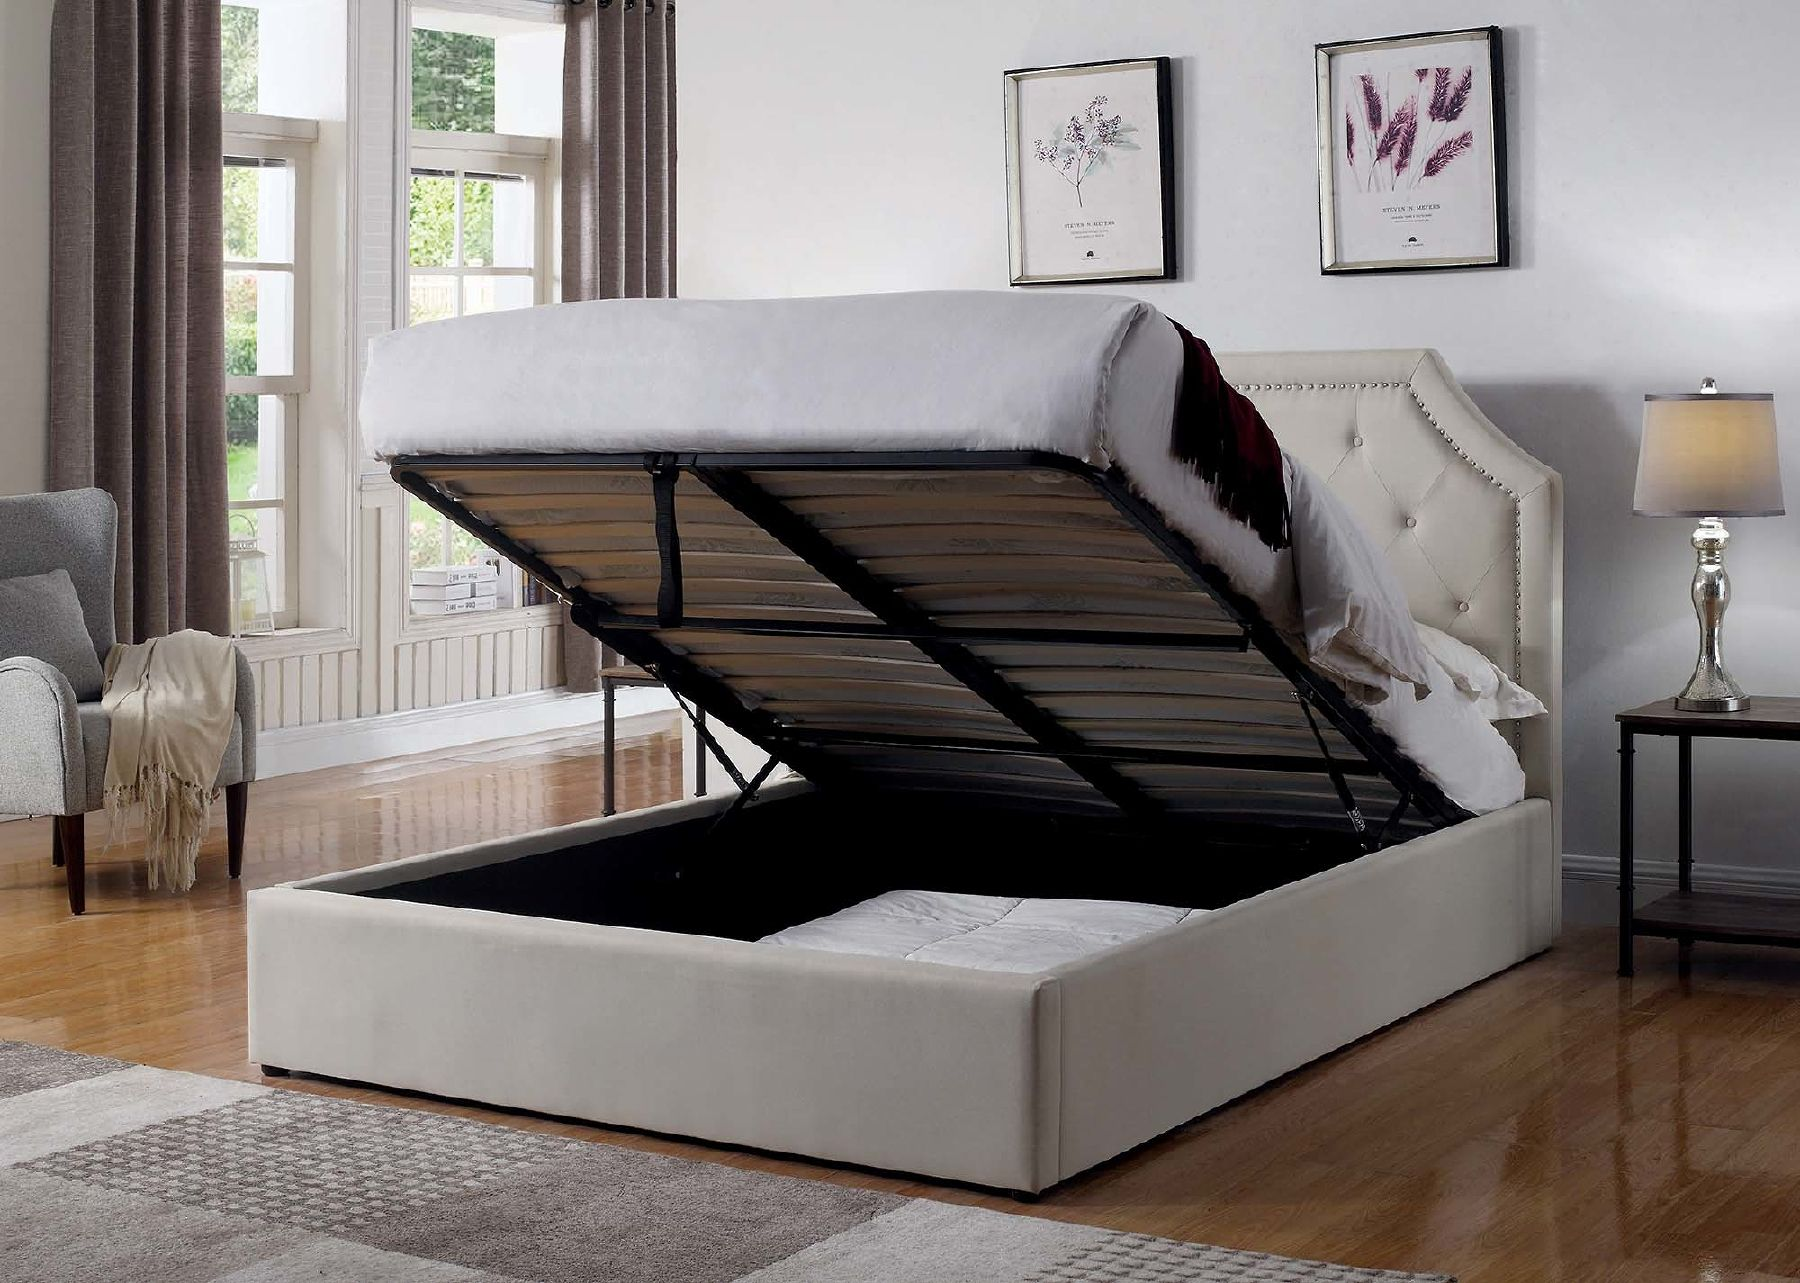 Hermosa Queen Size Bed 301469q Coaster Furniture Modern Beds In 2020 Queen Upholstered Bed King Upholstered Bed